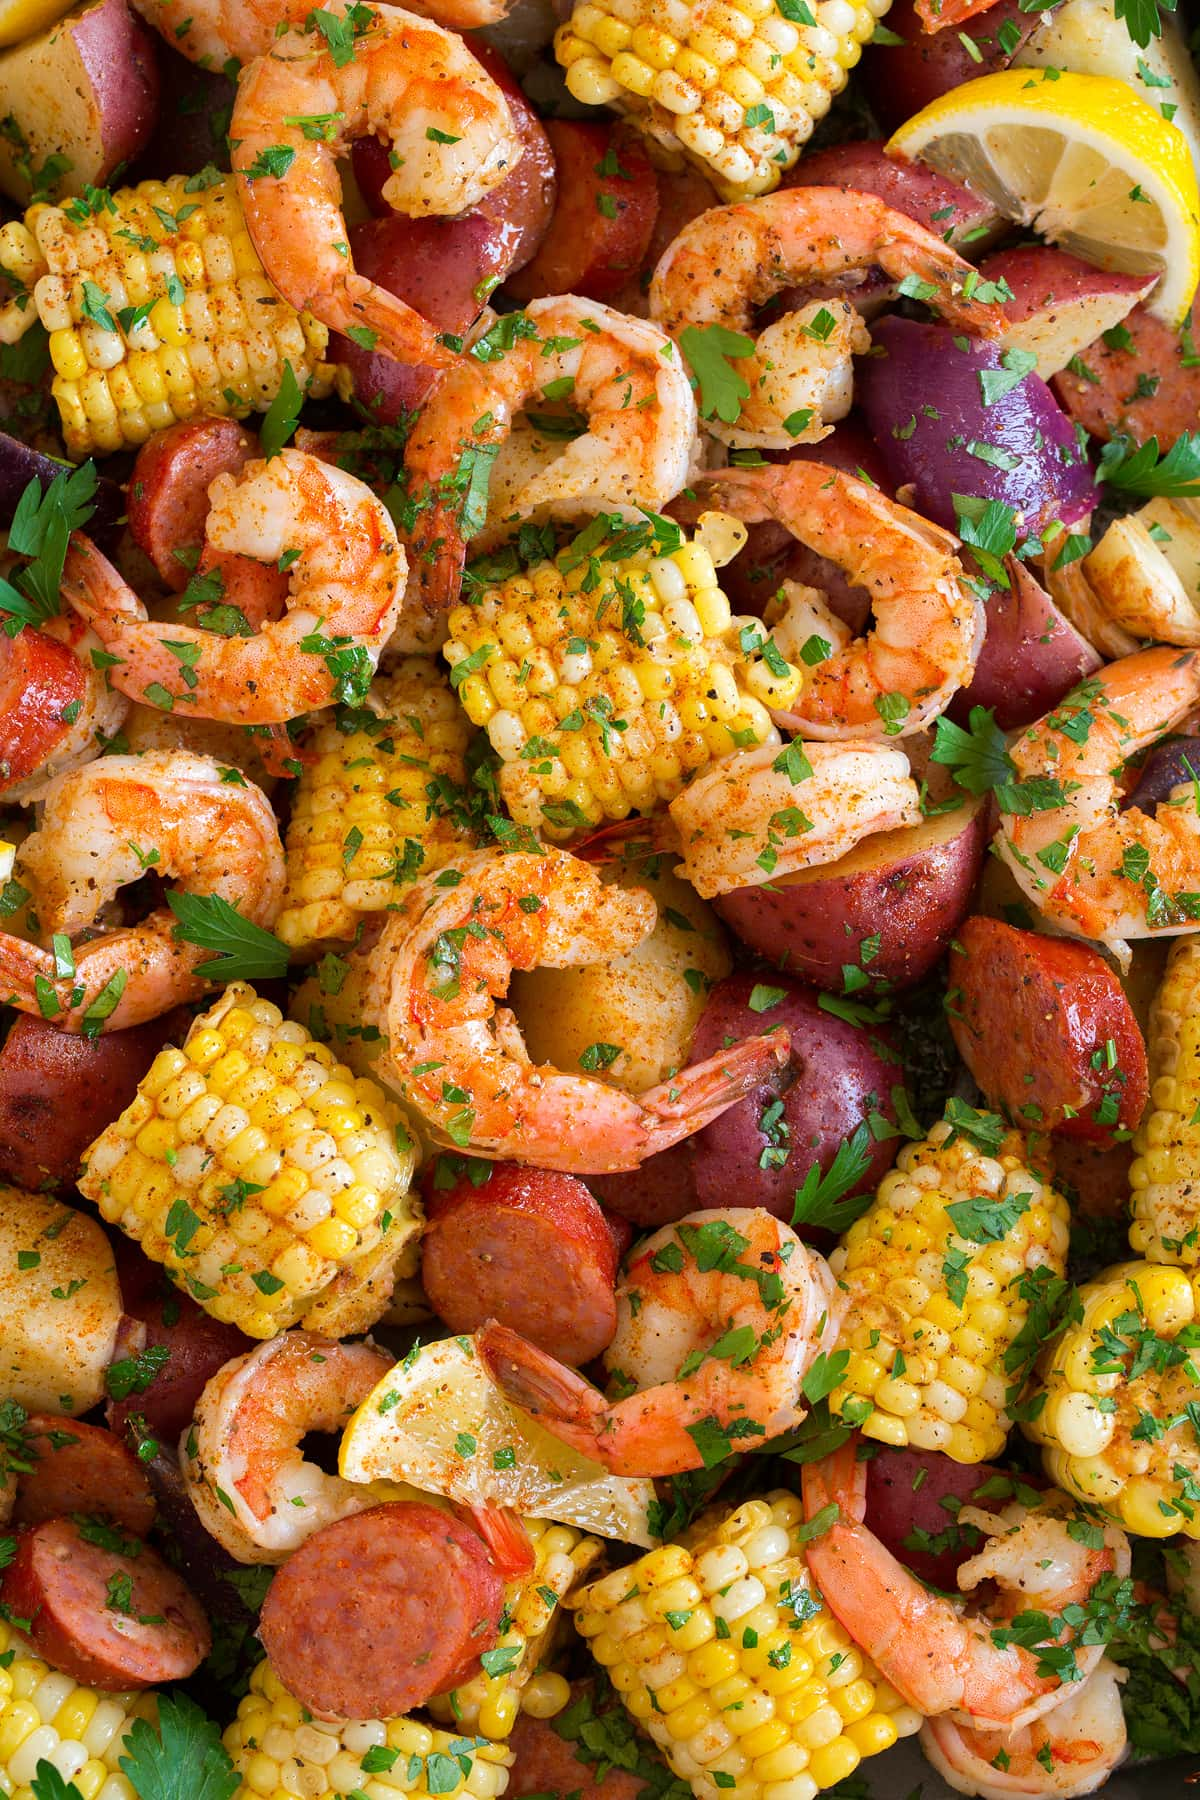 Close up image of shrimp boil.